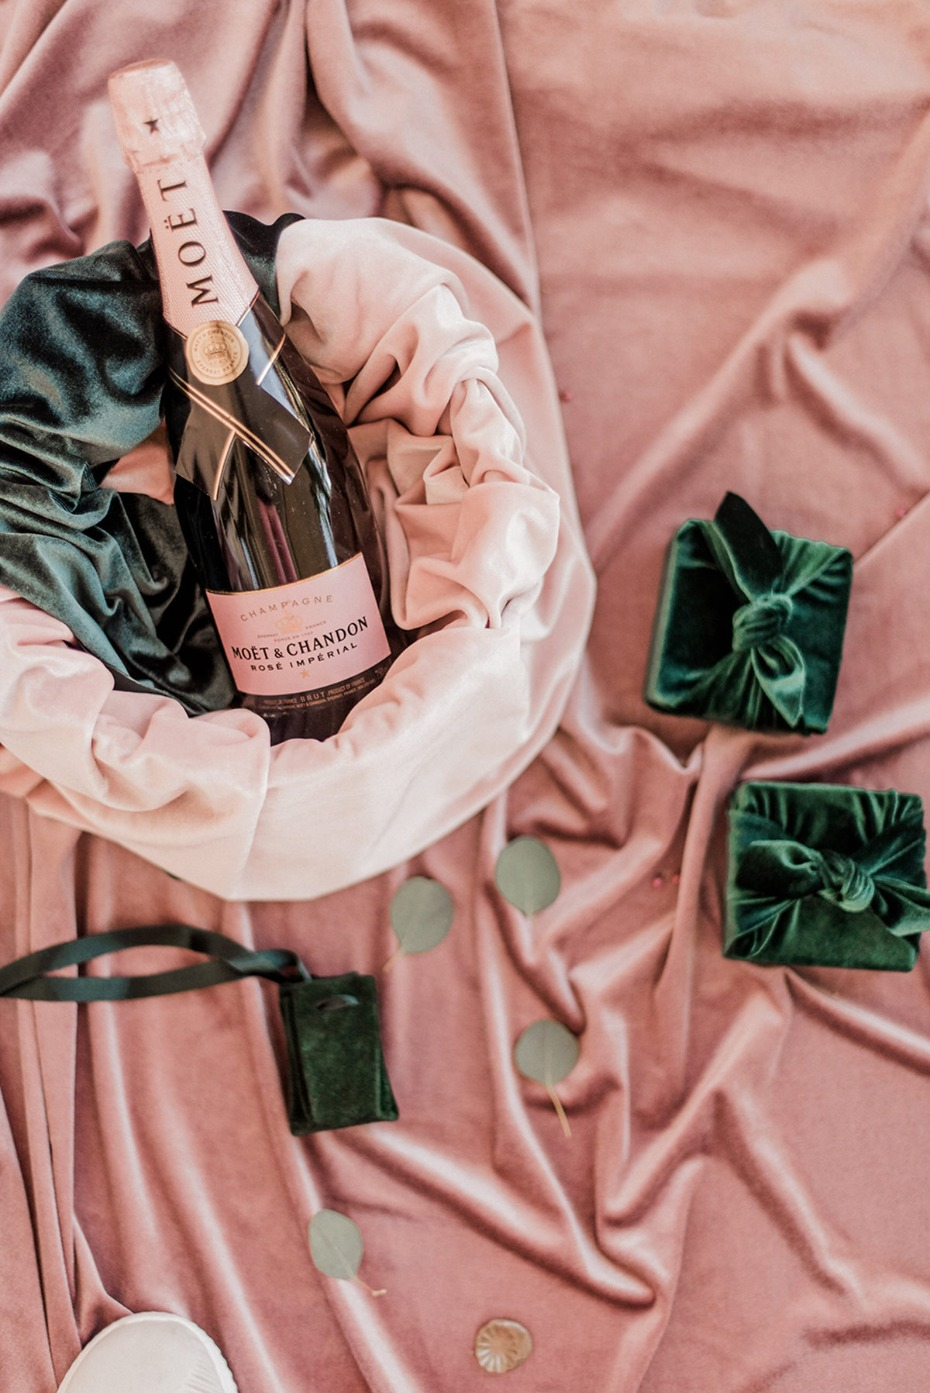 velvet wrapped favors and champagne